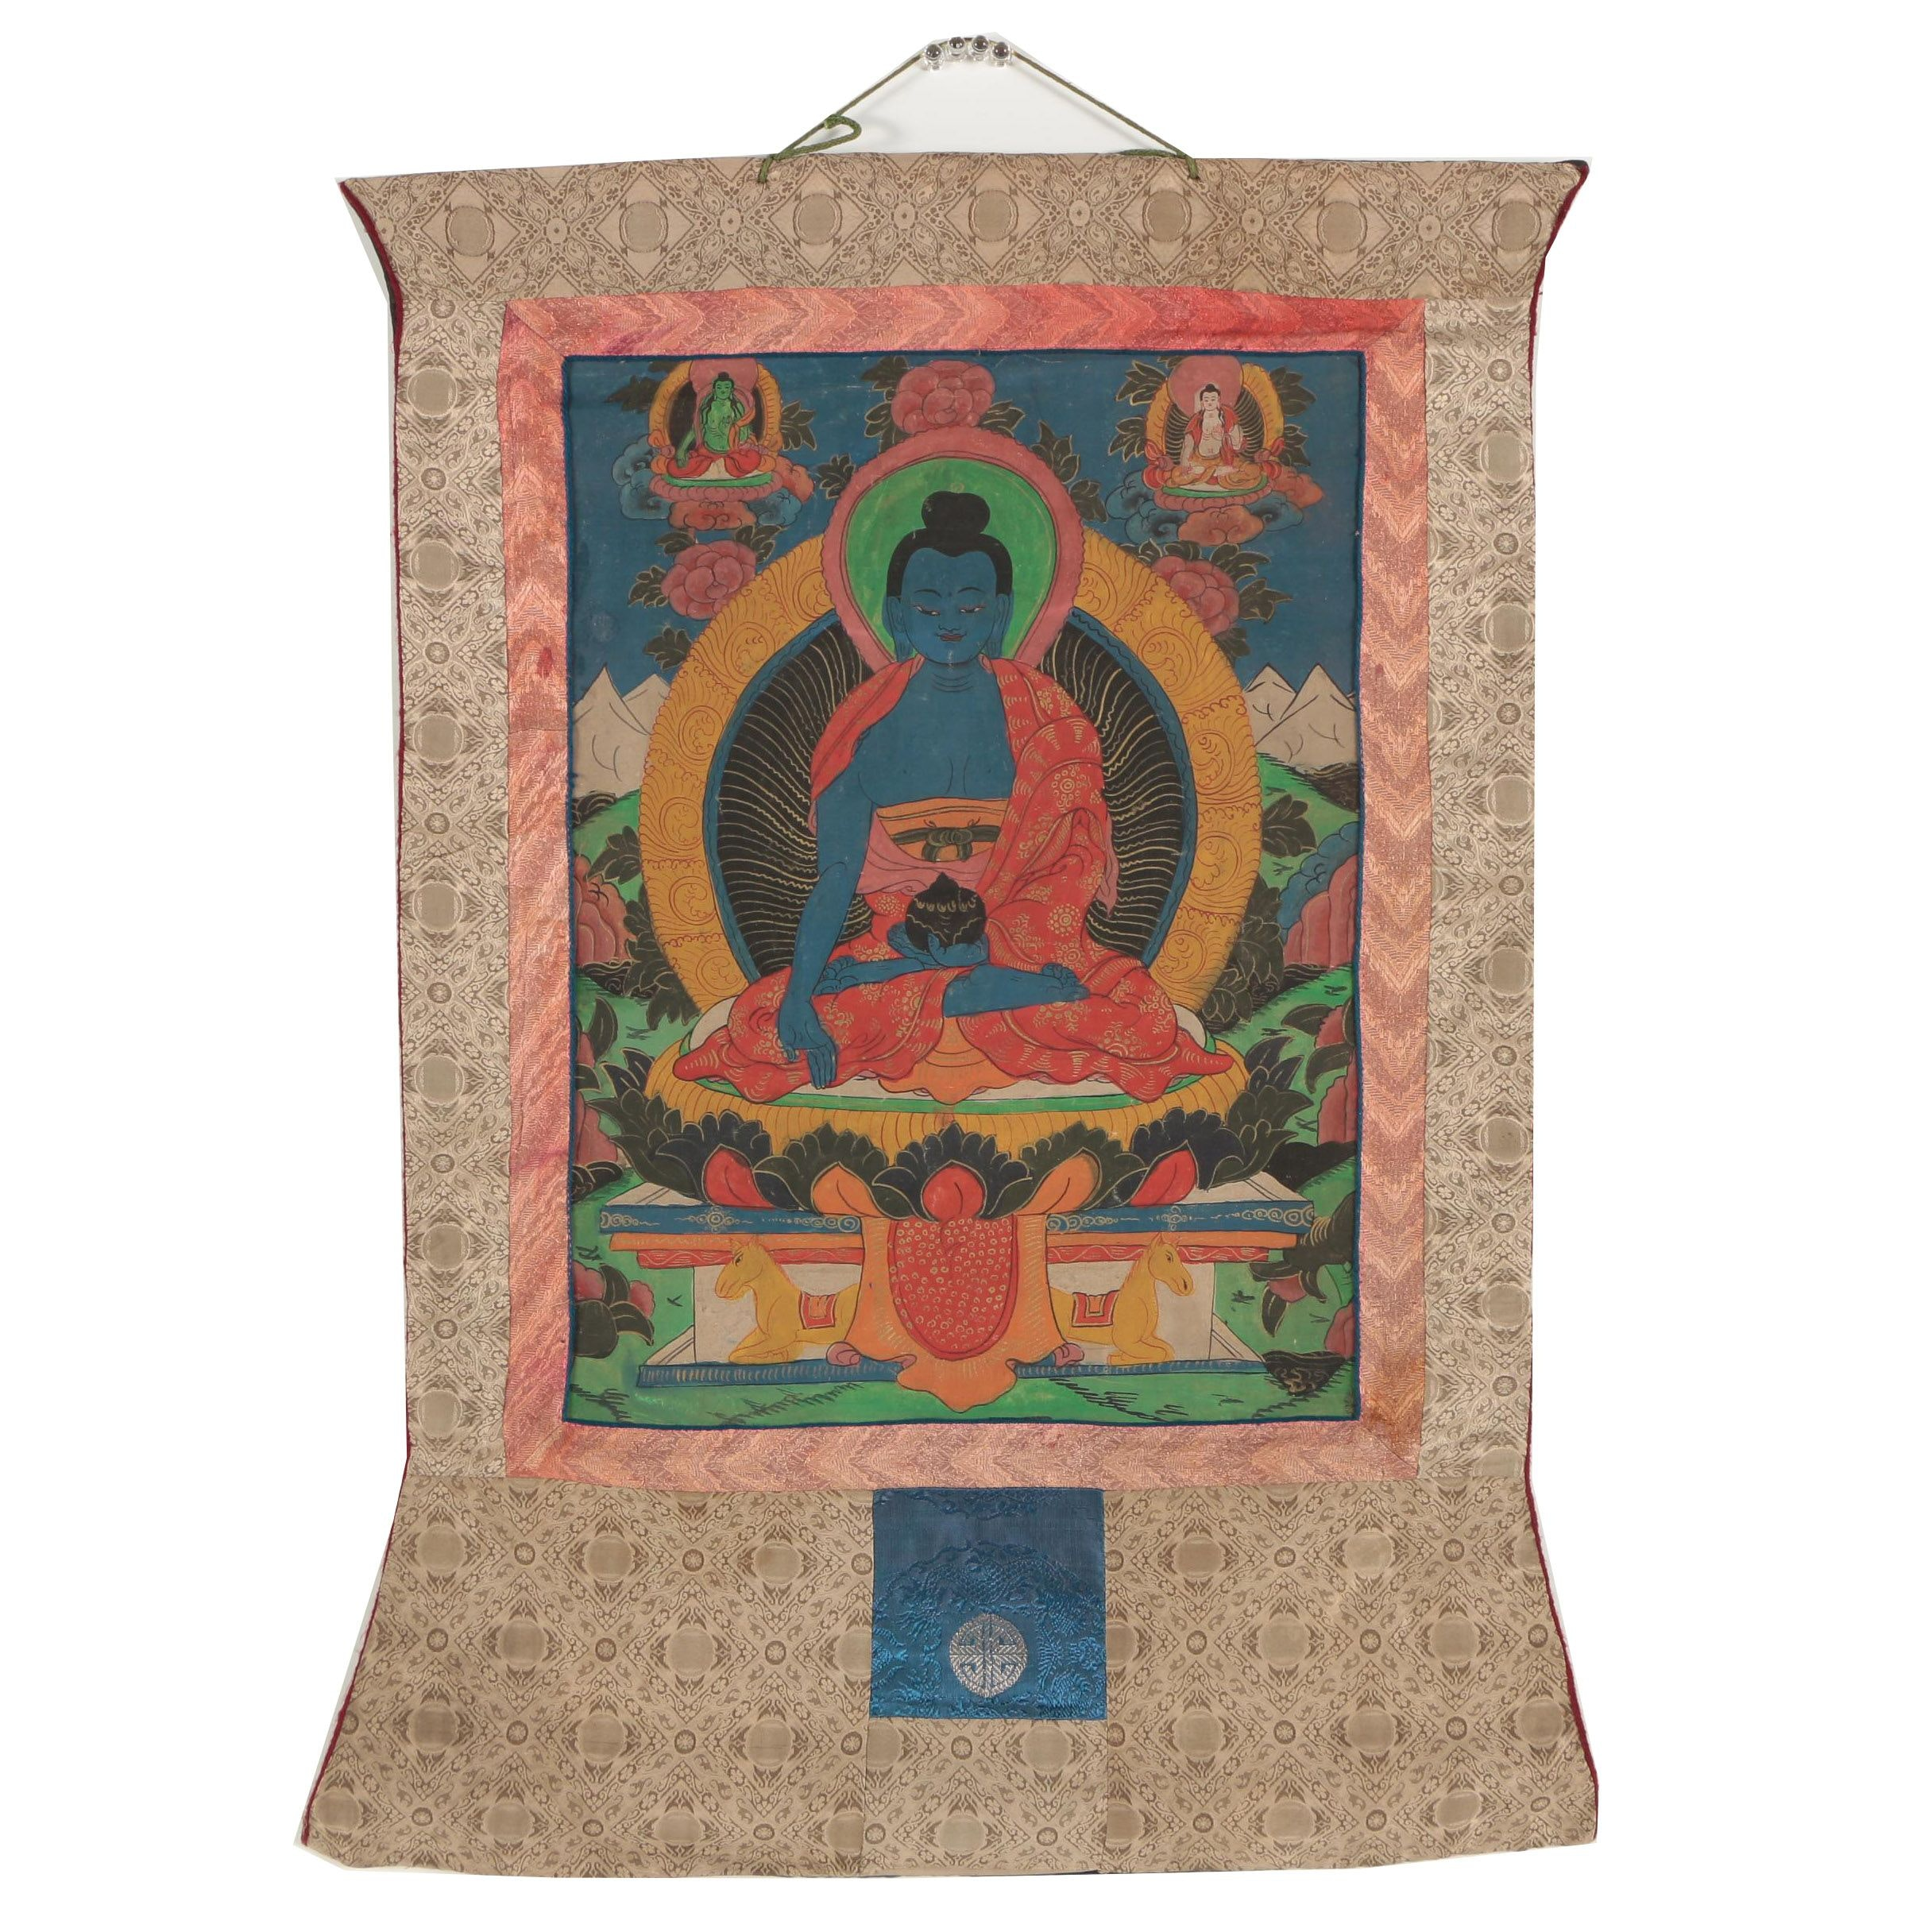 Hand-Painted Tibetan Buddhist Thangka of Aksobhya